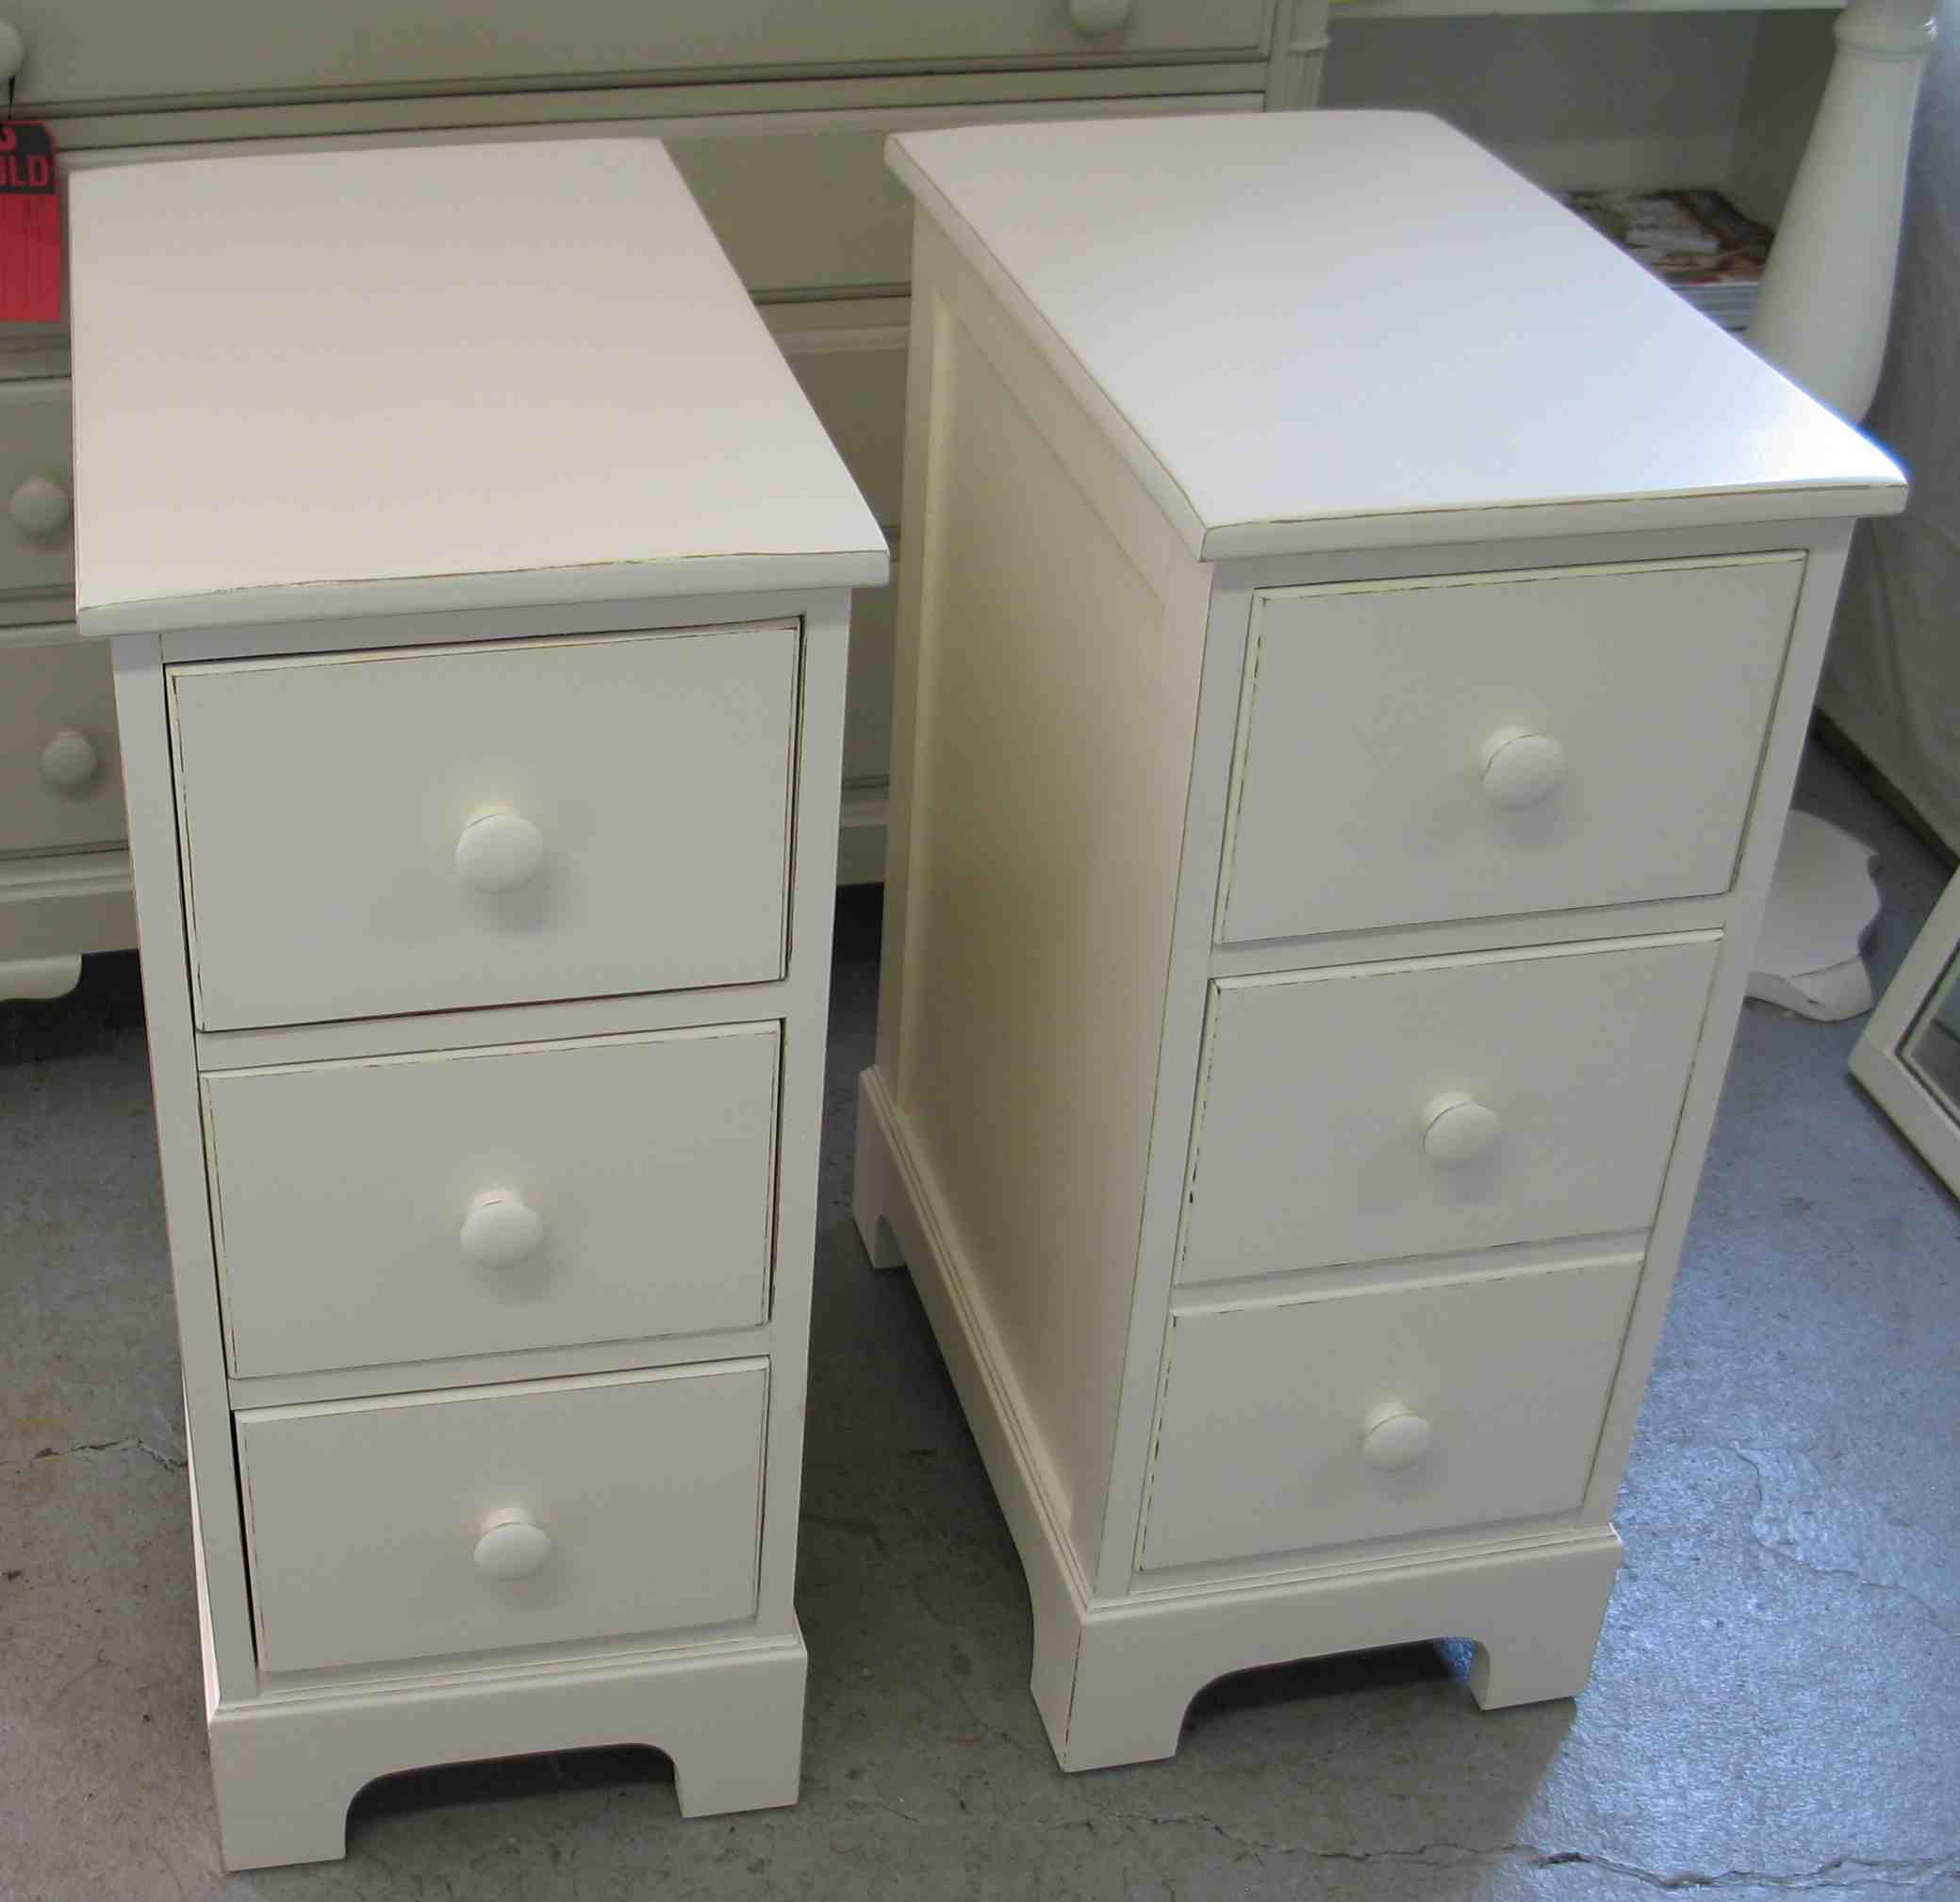 splendid shaker black drawer bedside table diy small for lamp room childrens ide round walnut mirrored tables grey kmart argos lamps modern beech high lampshades target gold